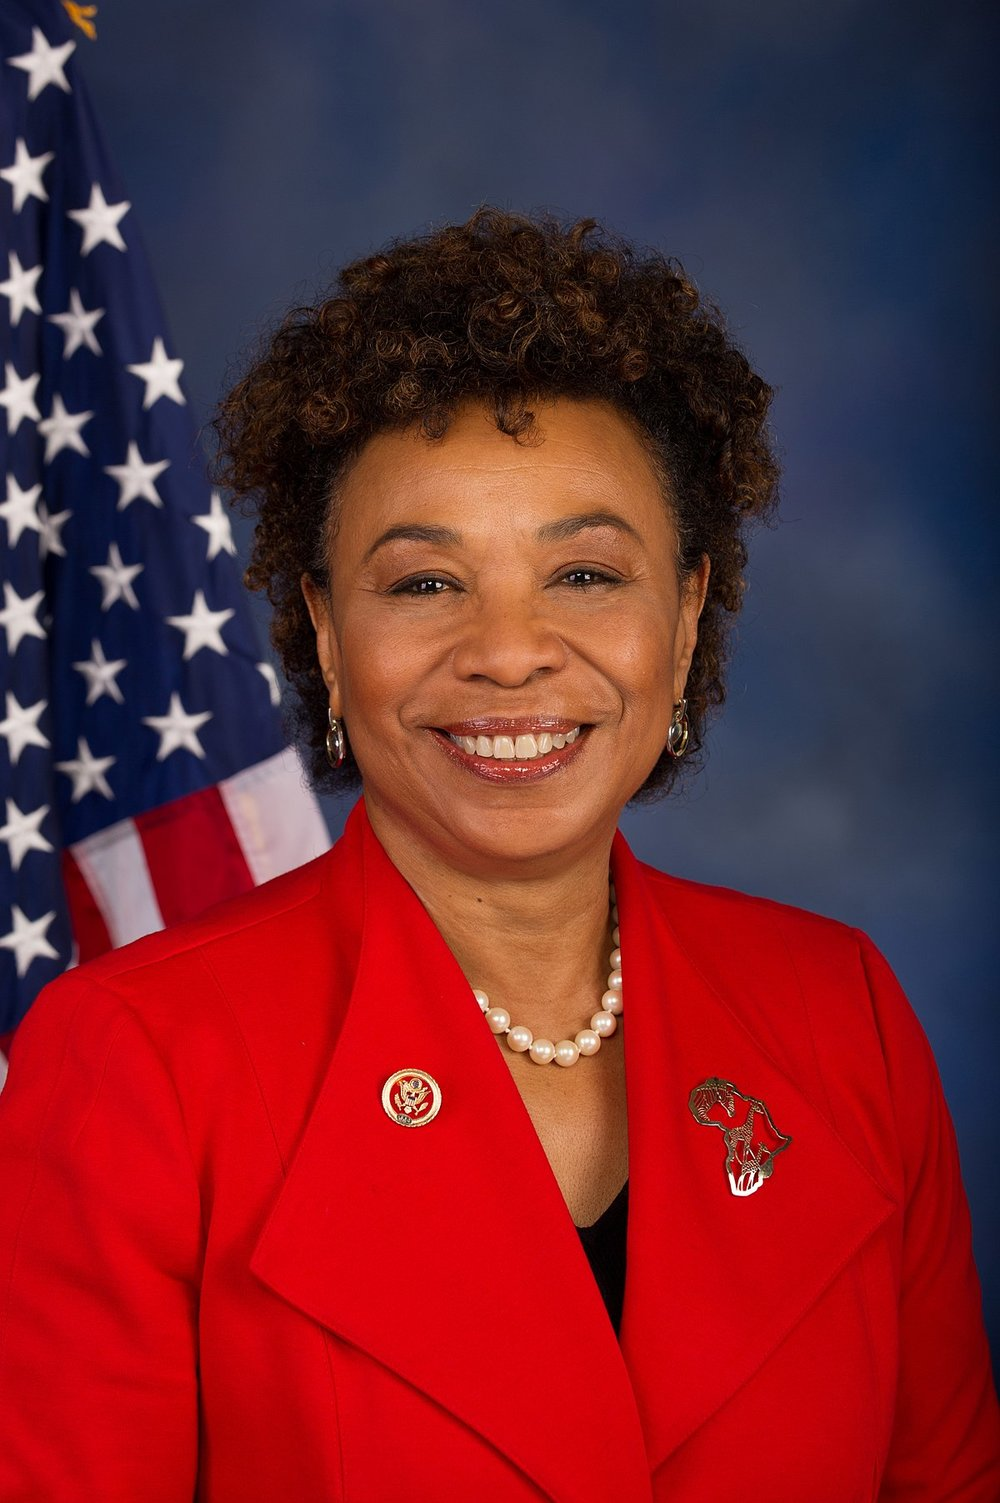 Barbara Lee - The only member of congress to vote against the AUMF in 2001